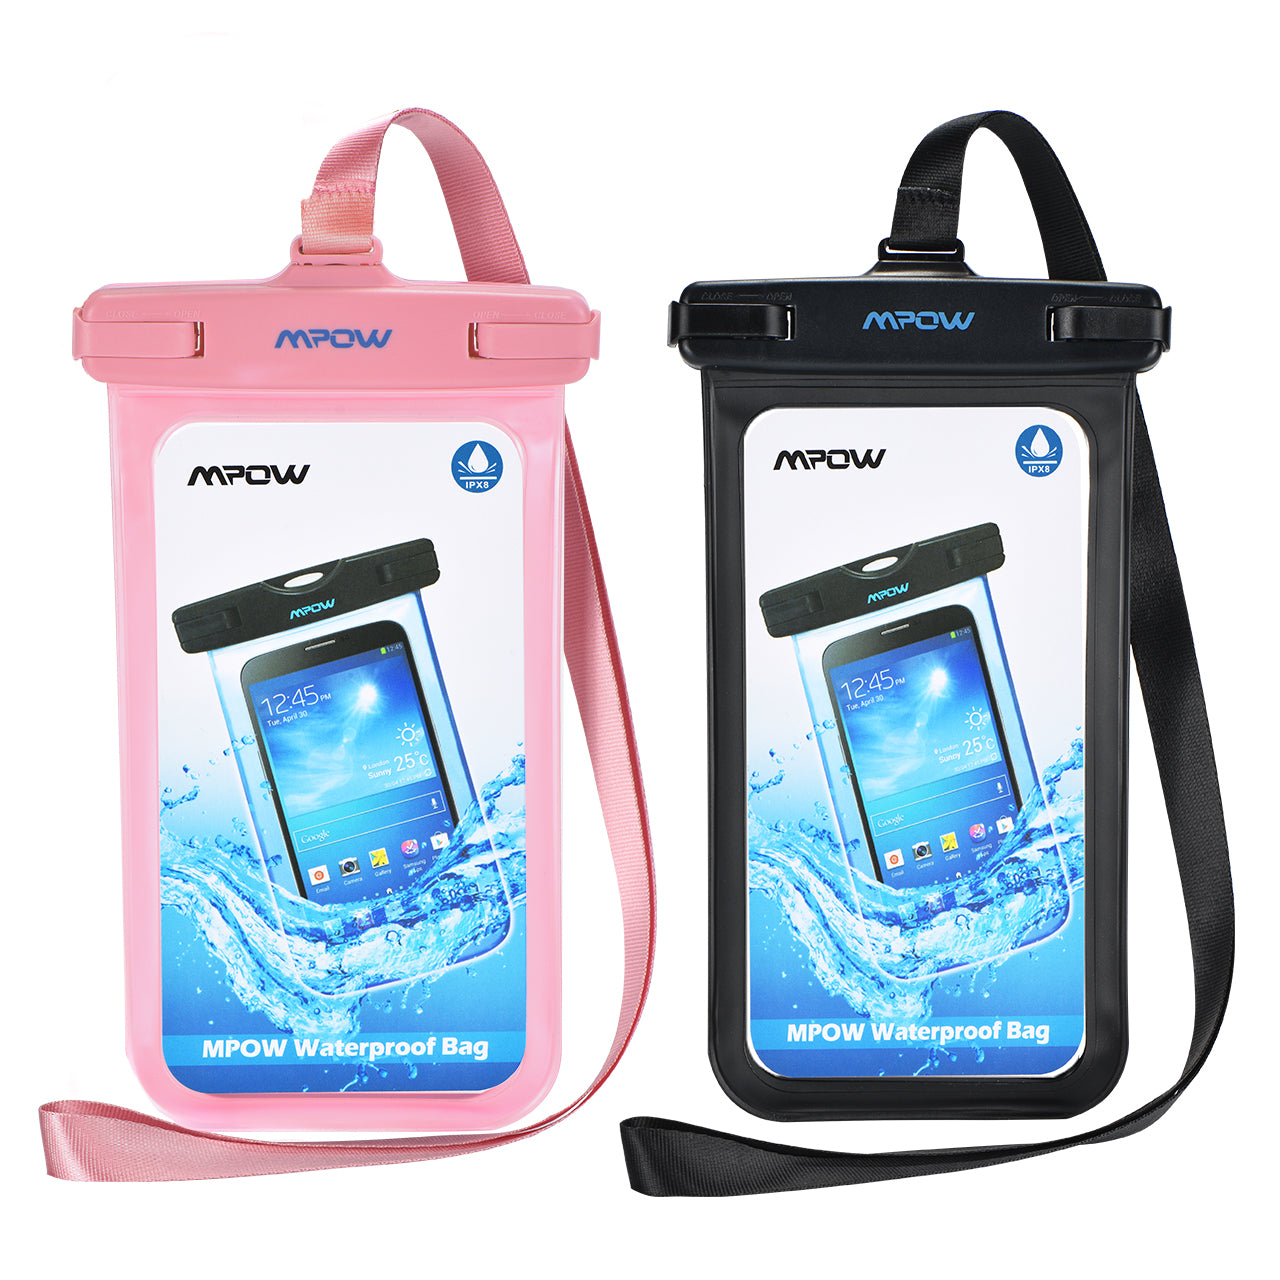 MPOW PA085B Waterproof Phone Pouch